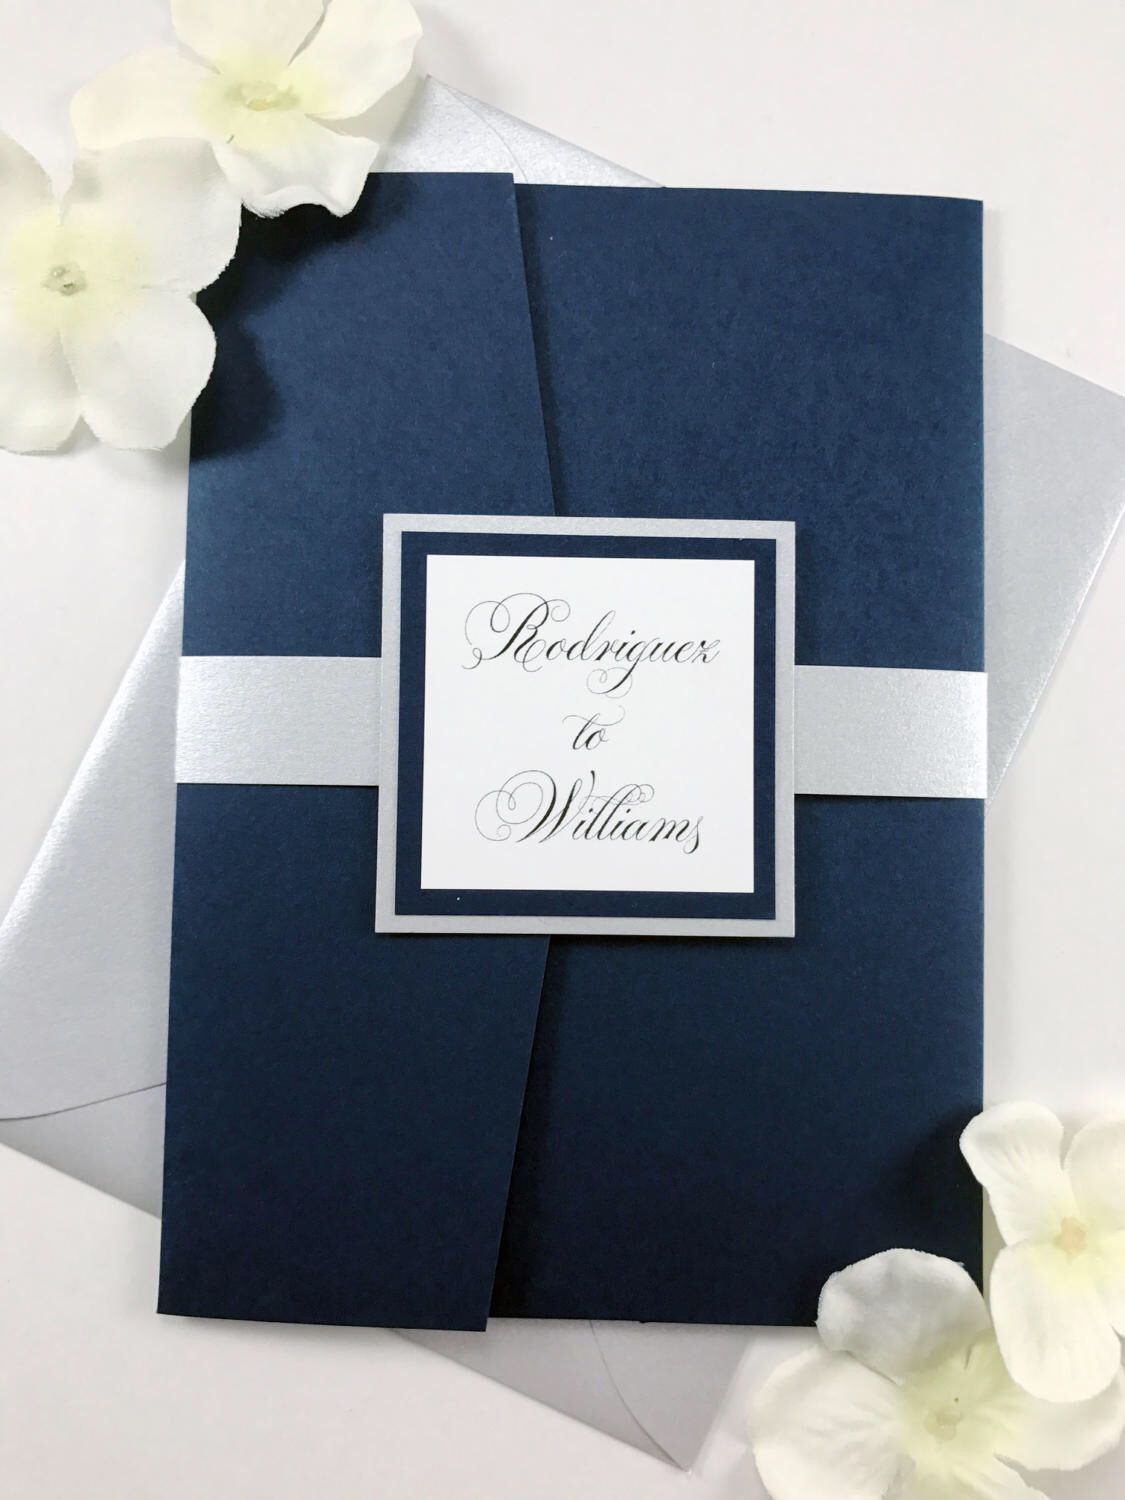 how to return address wedding envelopes%0A Classic Traditional Calligraphy Script Navy and Silver Wedding invitations   Elegant Flowy Script Navy White and